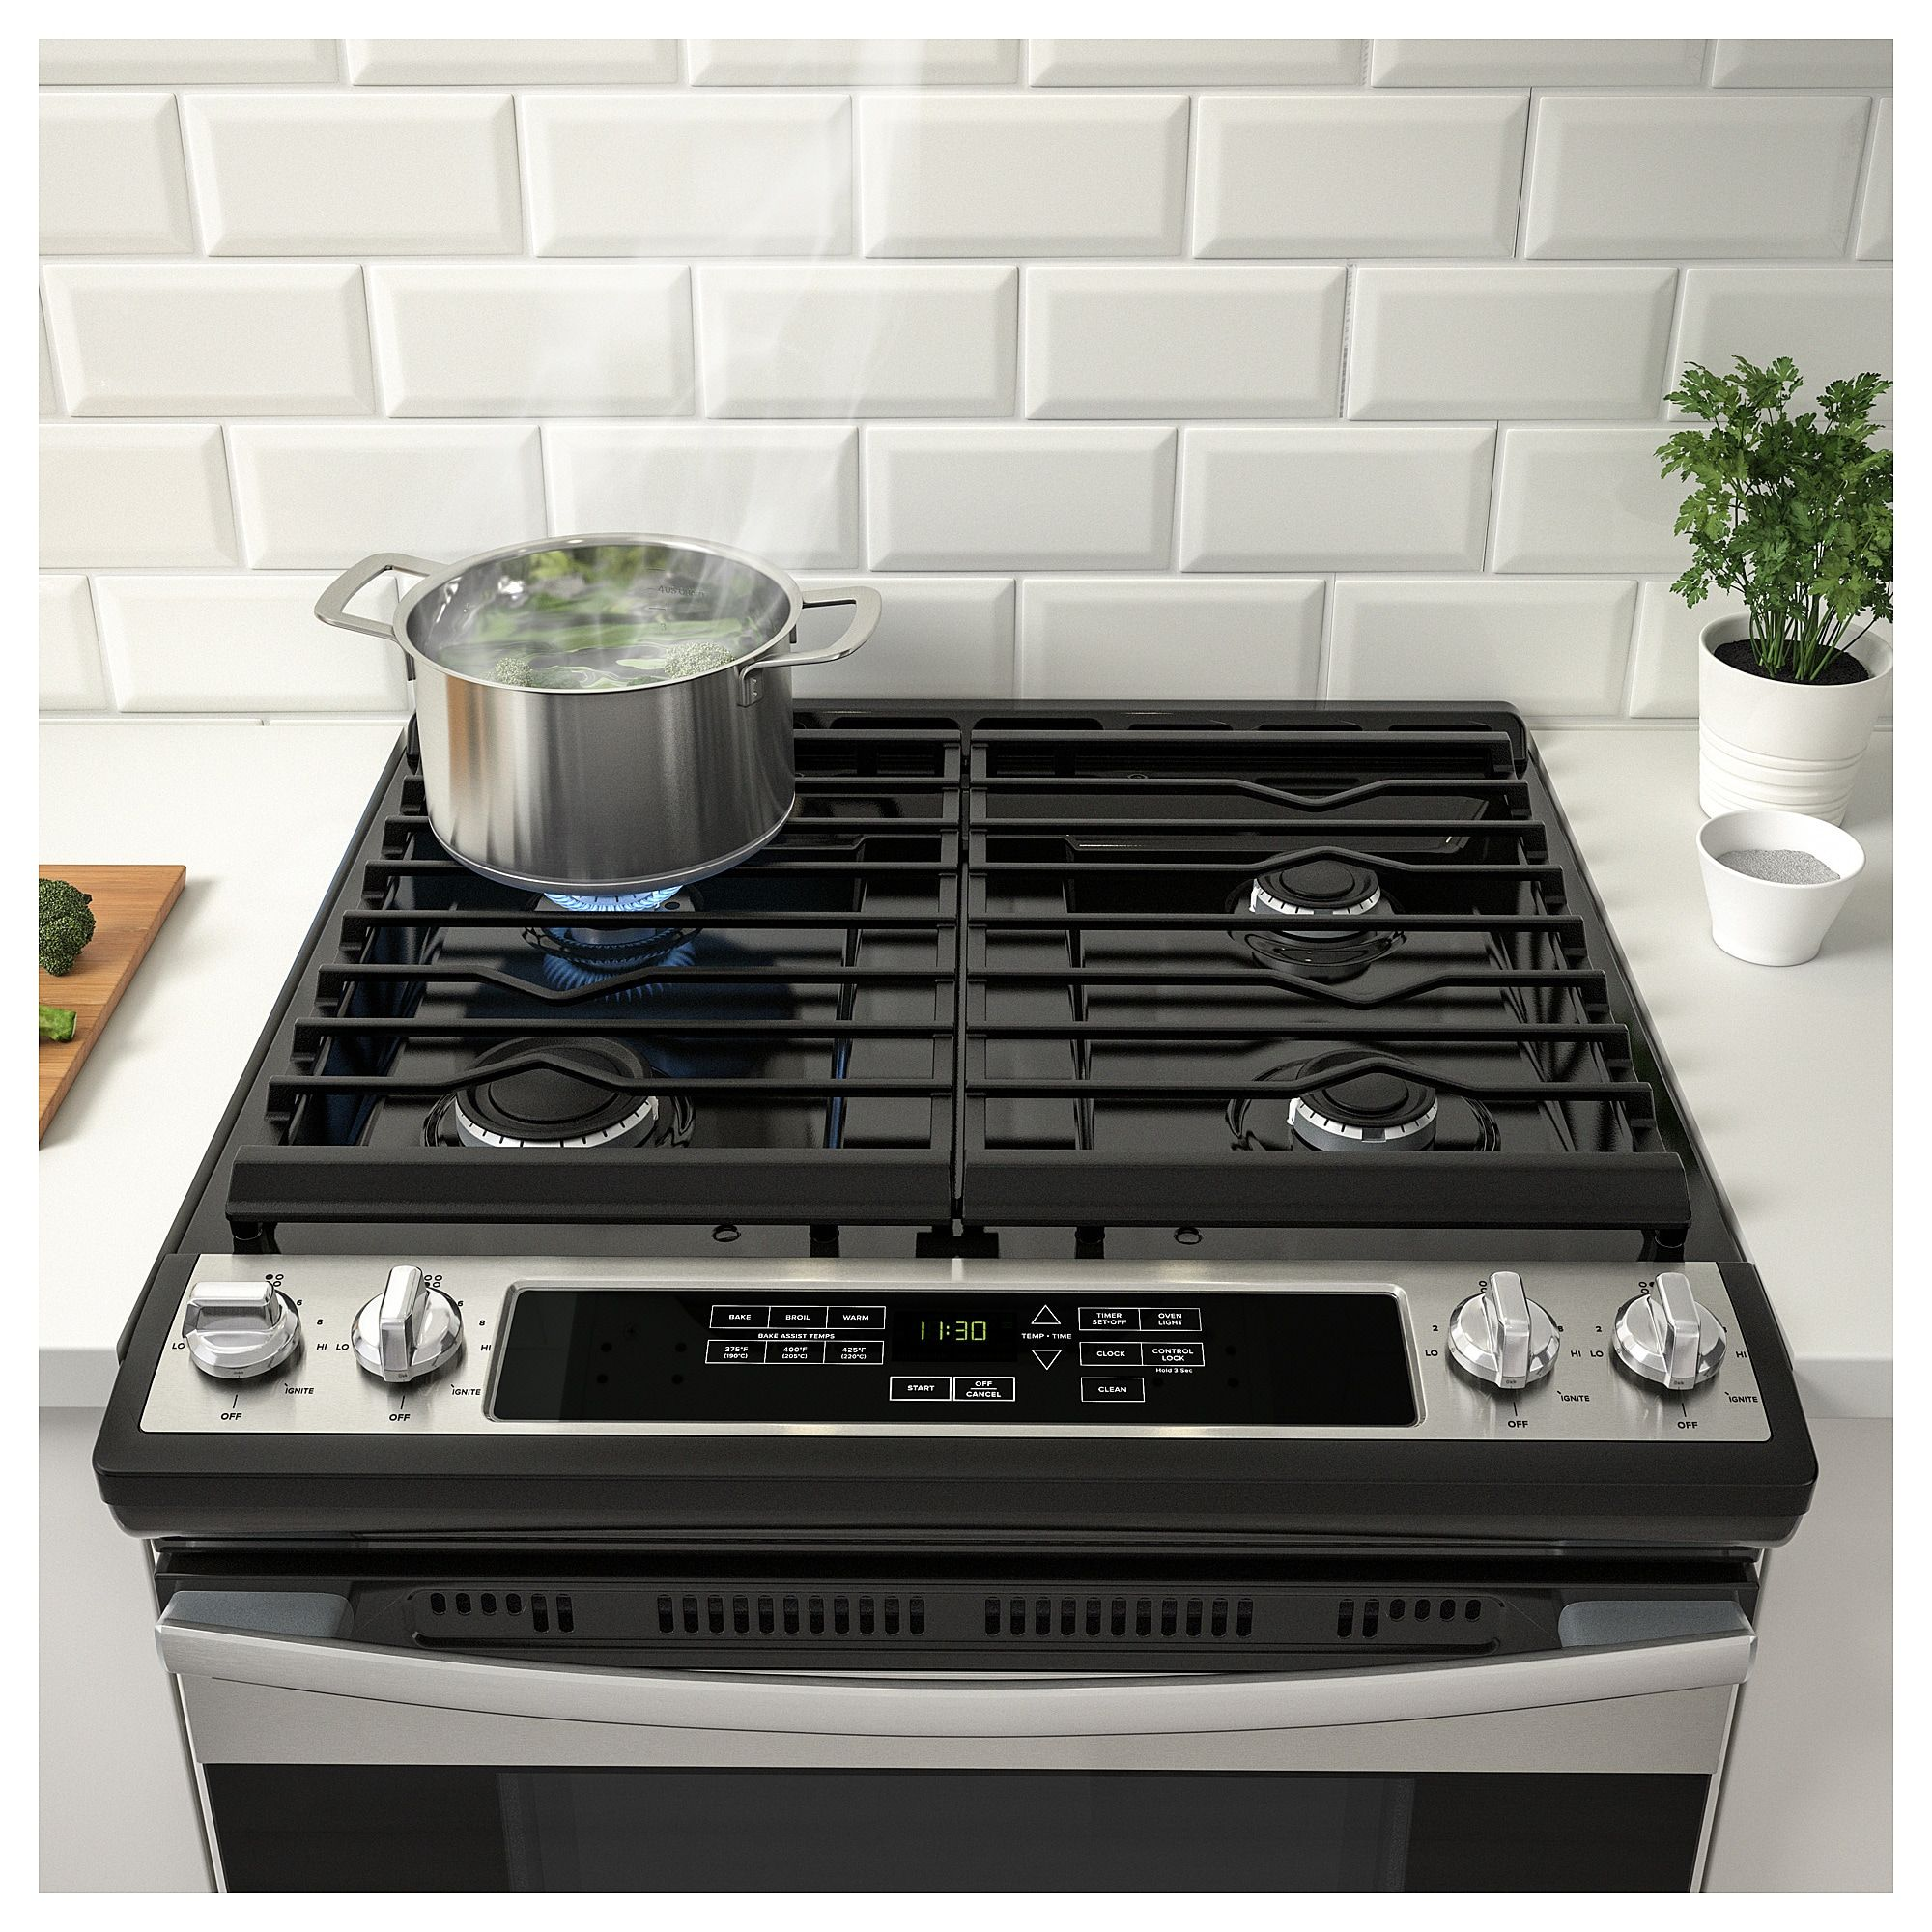 Ikea Tillagad Stainless Steel Range With Gas Cooktop Range Cooker Cooking Supplies Fun Cooking